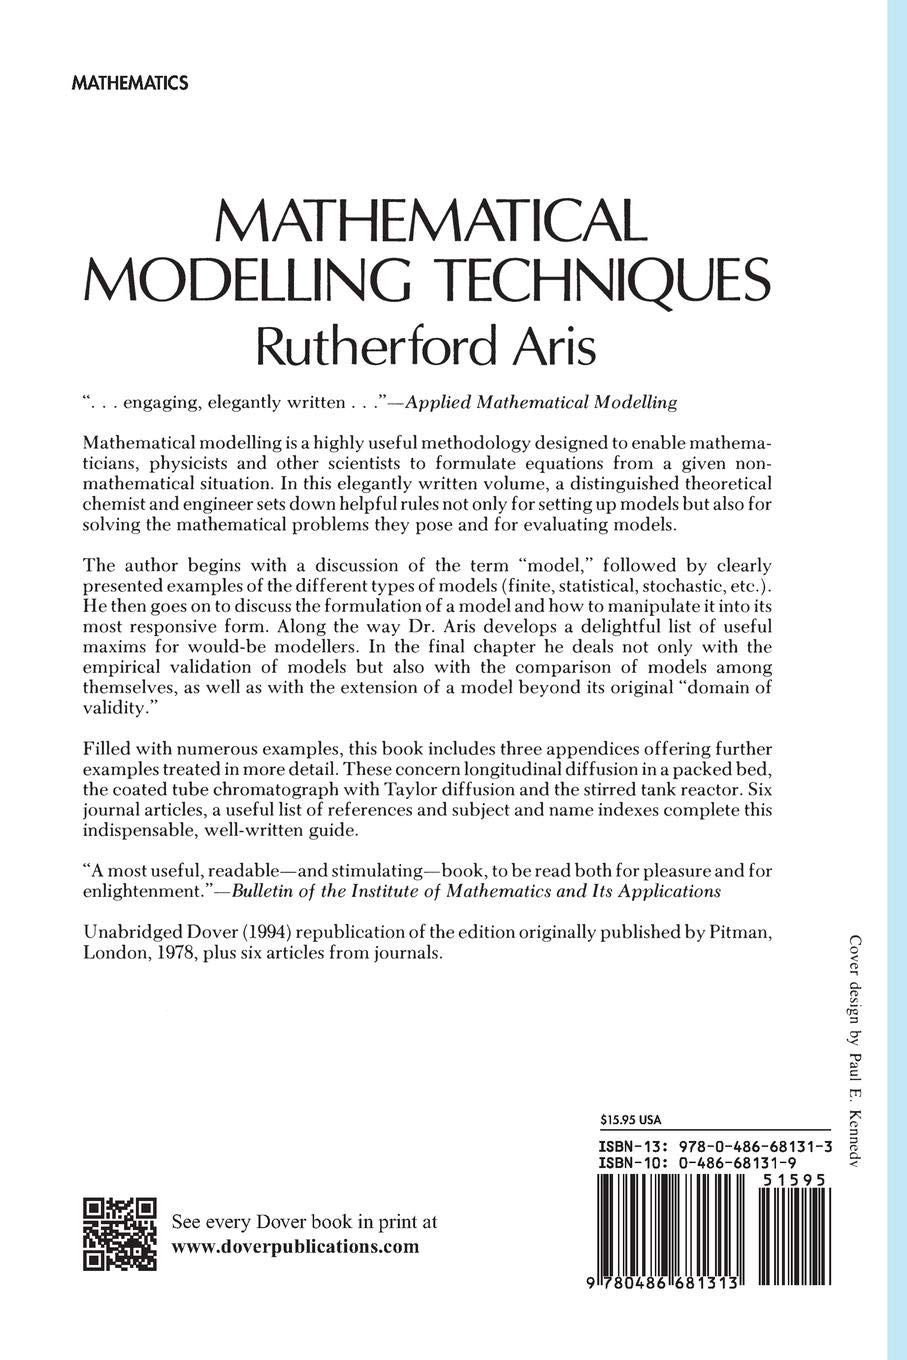 Mathematical Modelling Techniques (Dover Books on Computer